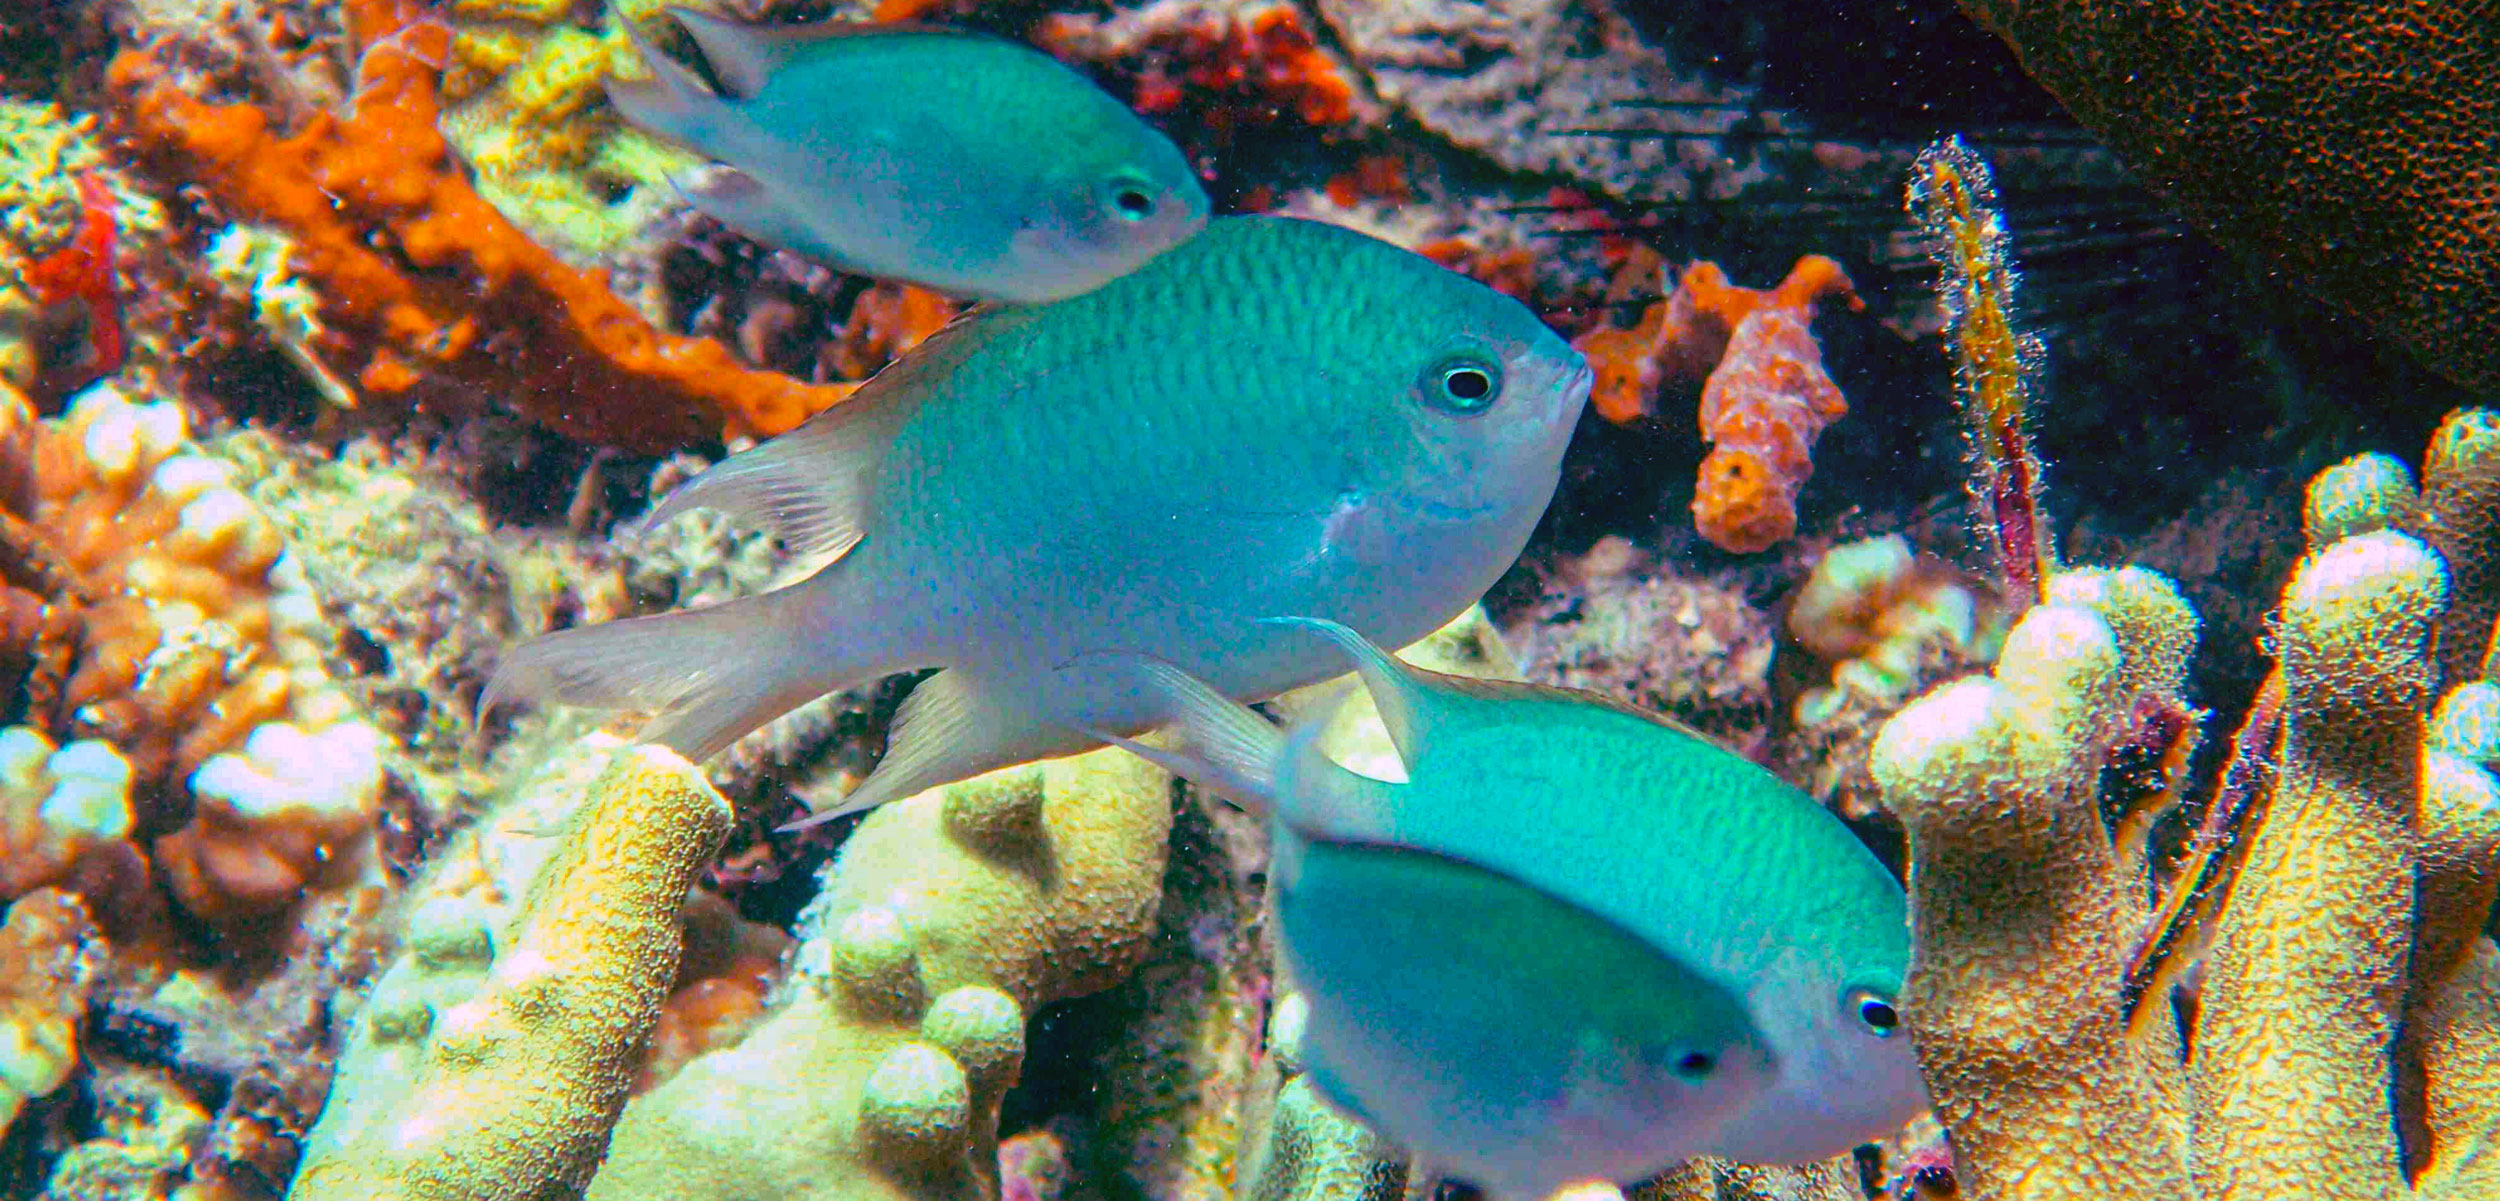 Altrichthys damselfish